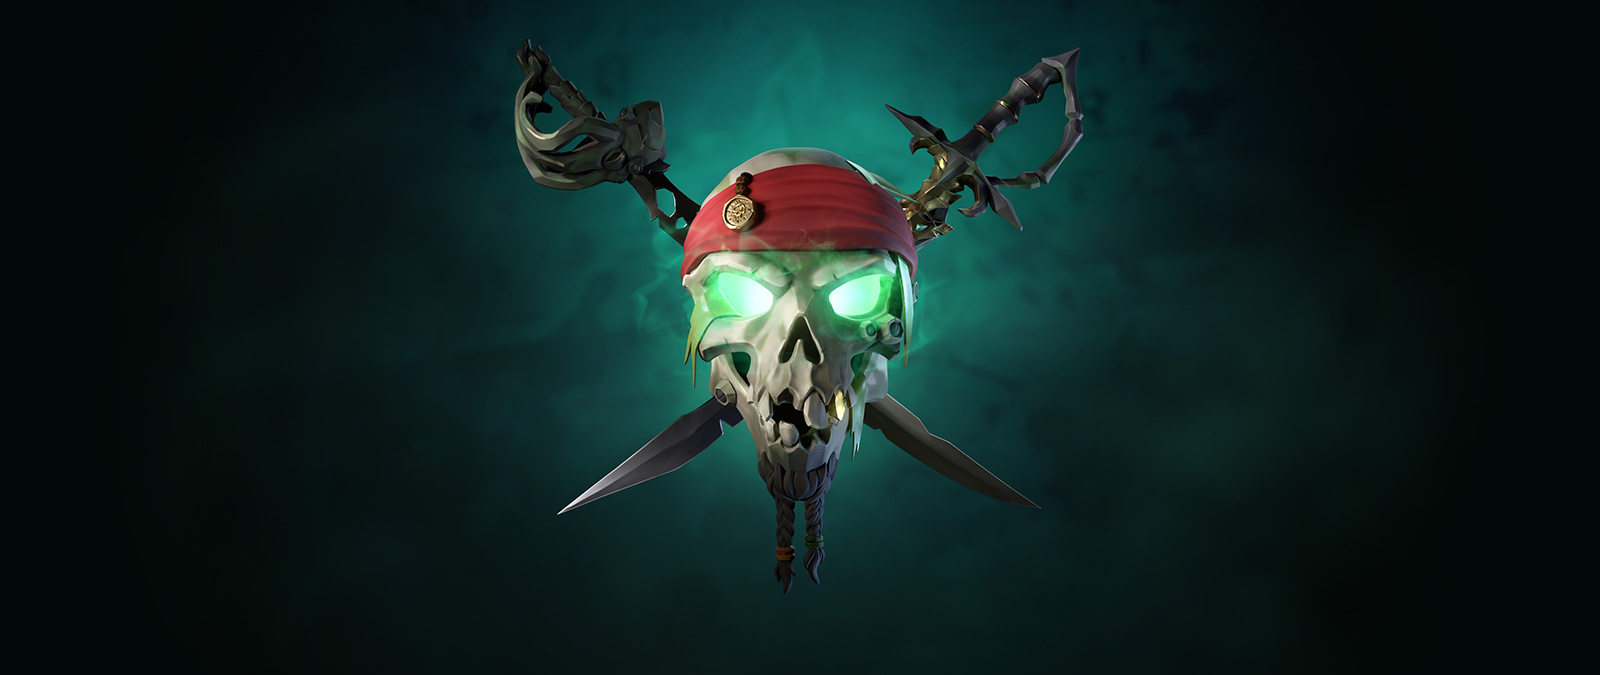 Two swords and a skull with glowing green eyes wearing Captain Jack Sparrow's  headband with a coin on a teal ombre background